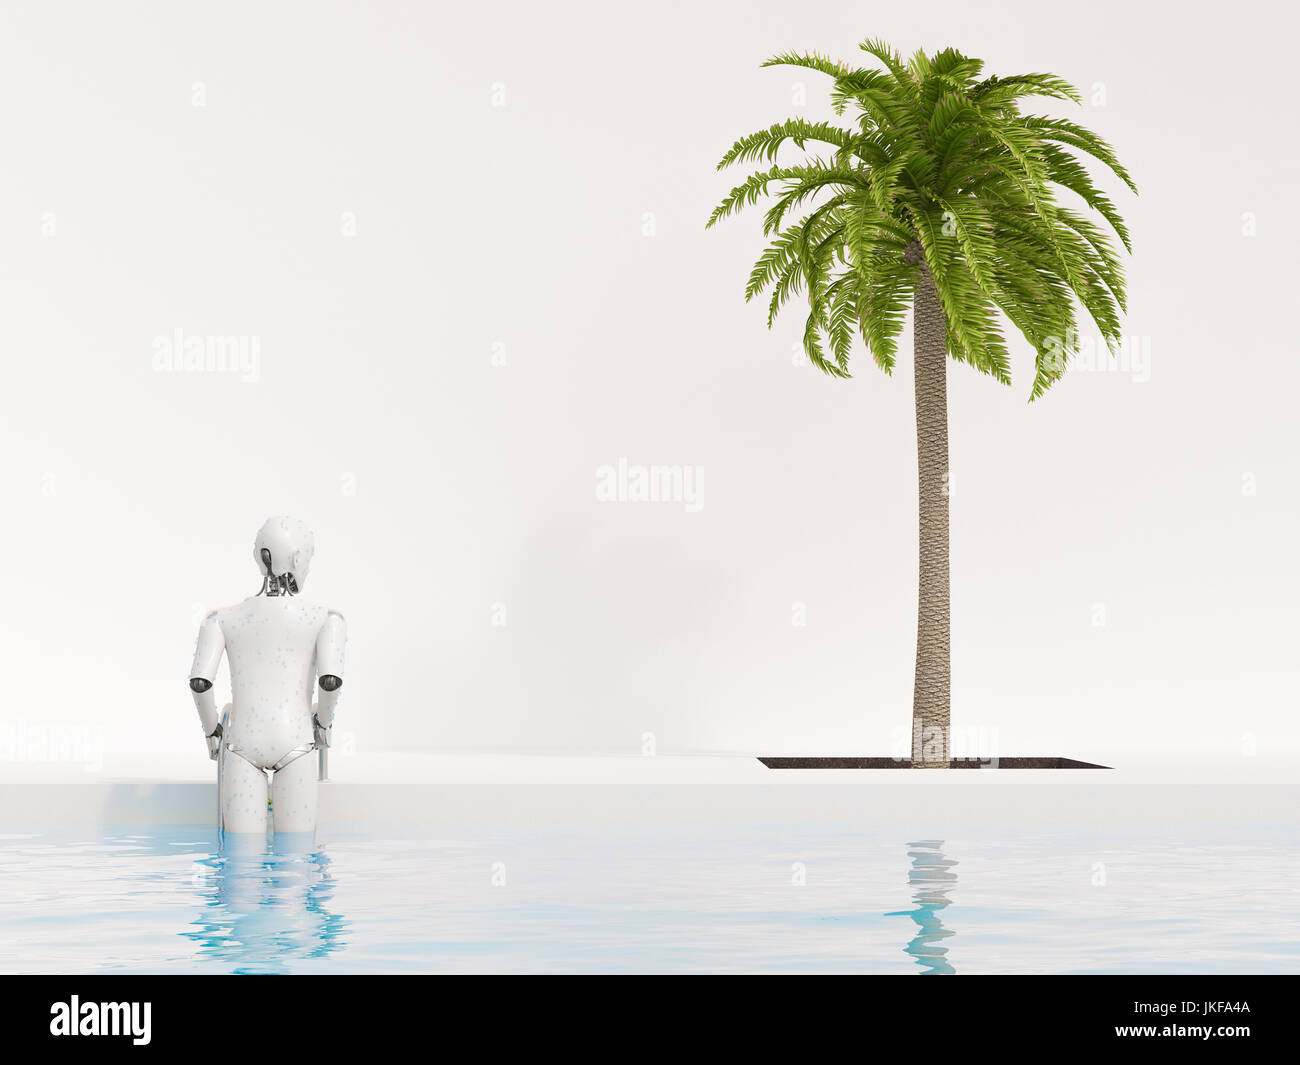 Robot getting out of swimming pool, 3d rendering - Stock Image